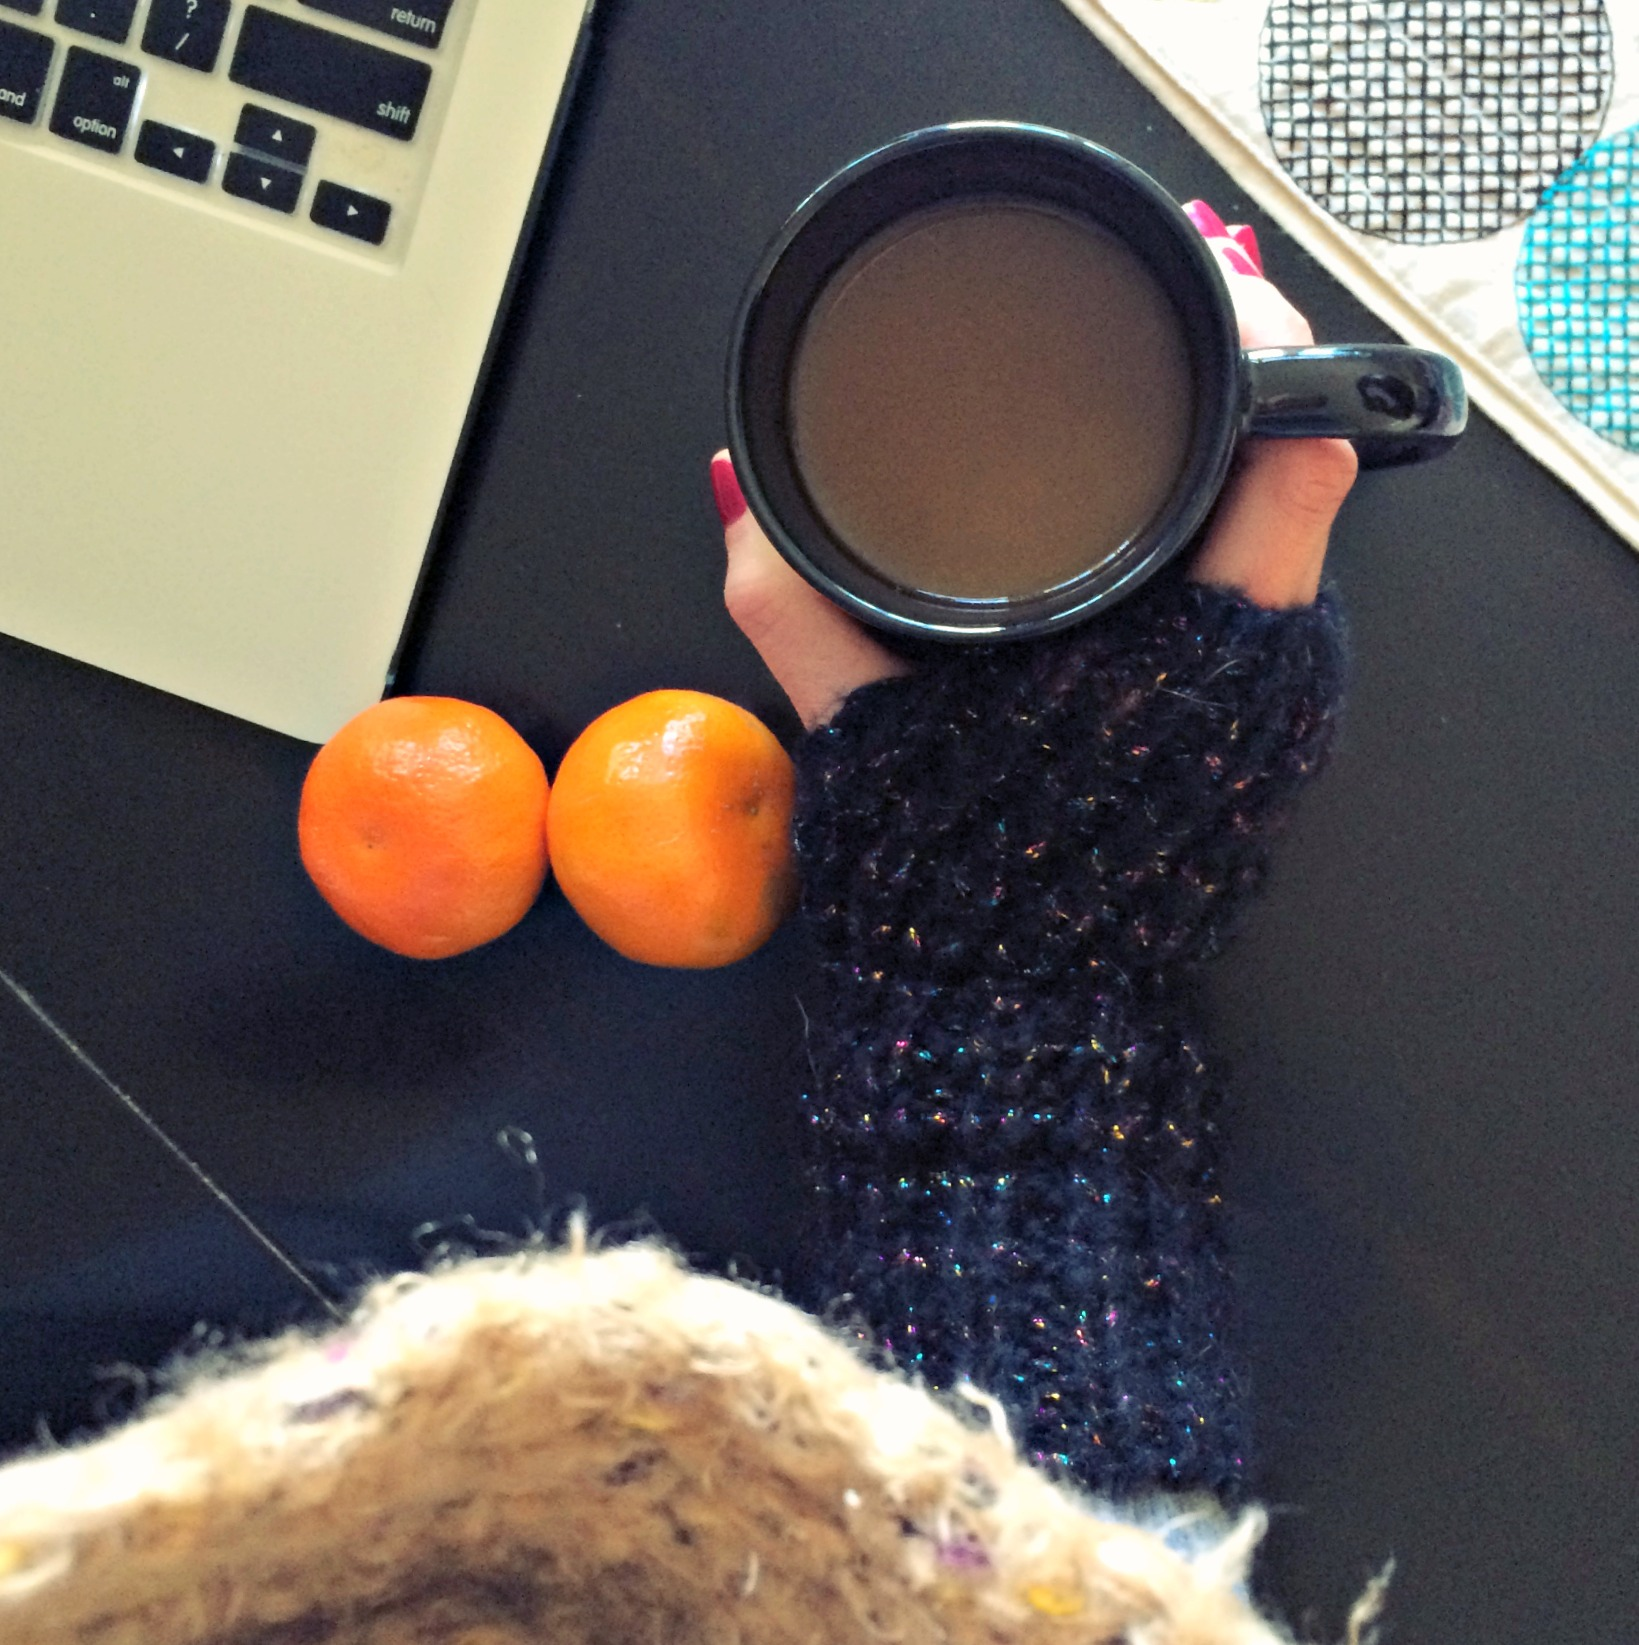 cozy coffee and clementines